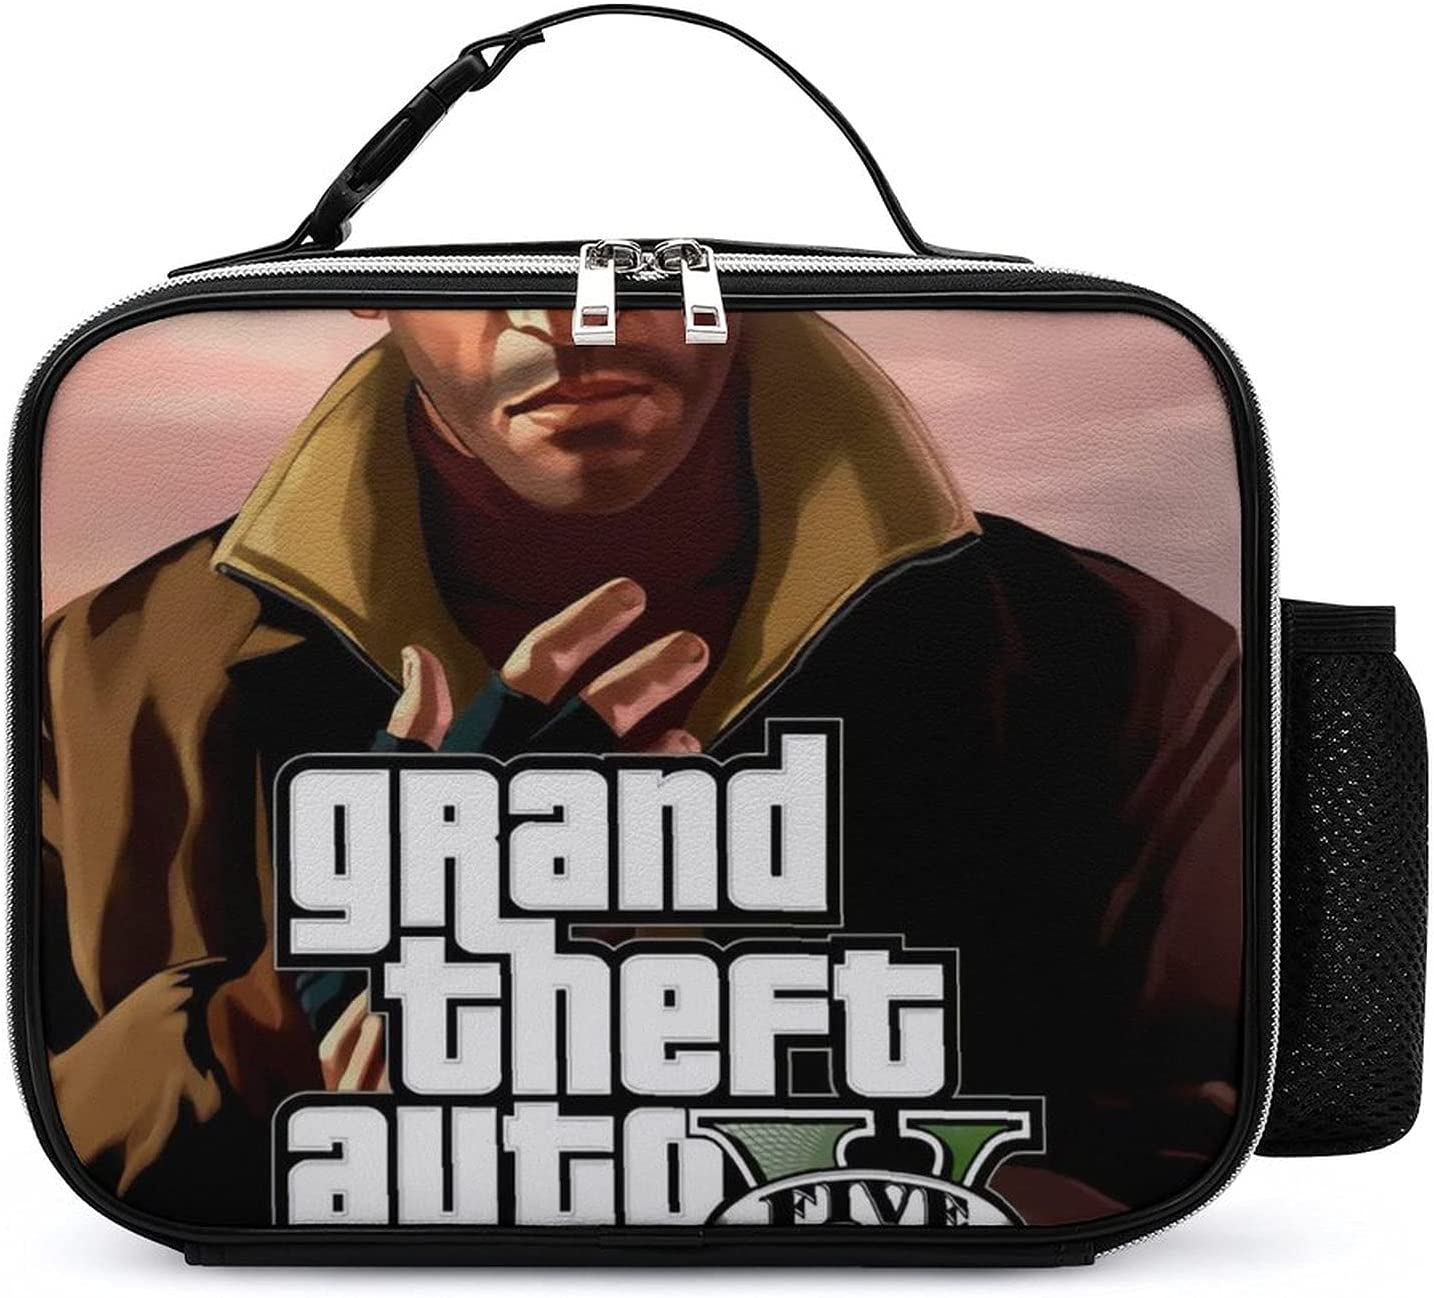 Grand Theft Auto Gaming New Orleans Mall Leather Lunch Seattle Mall Fit Women Men for Bag and